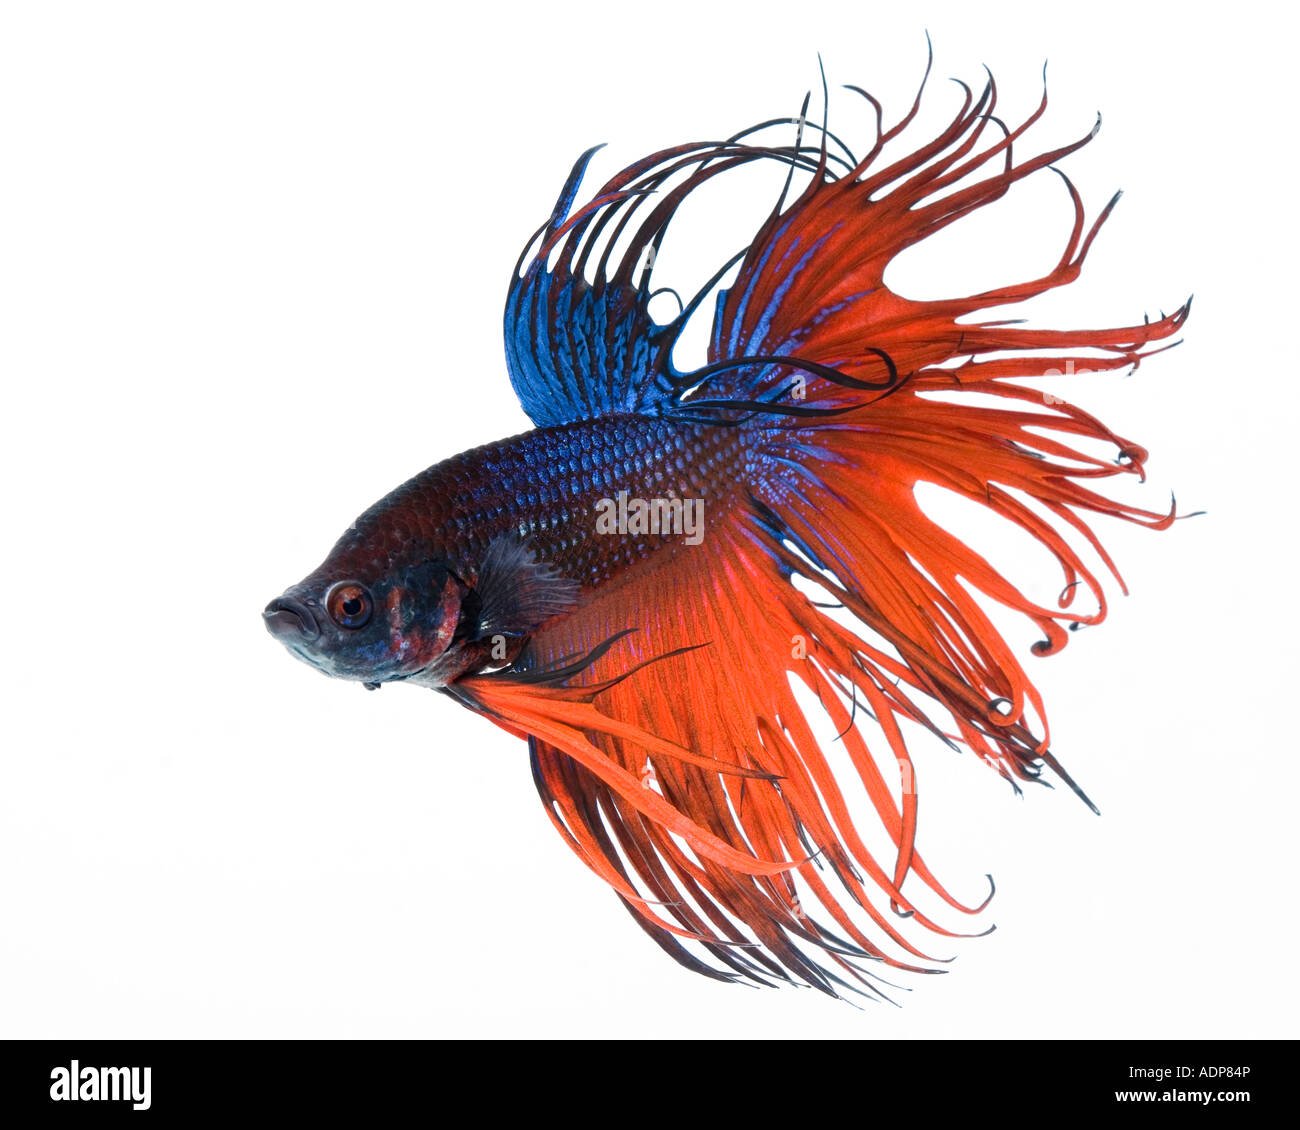 Colourful Betta Stock Photos & Colourful Betta Stock Images - Alamy